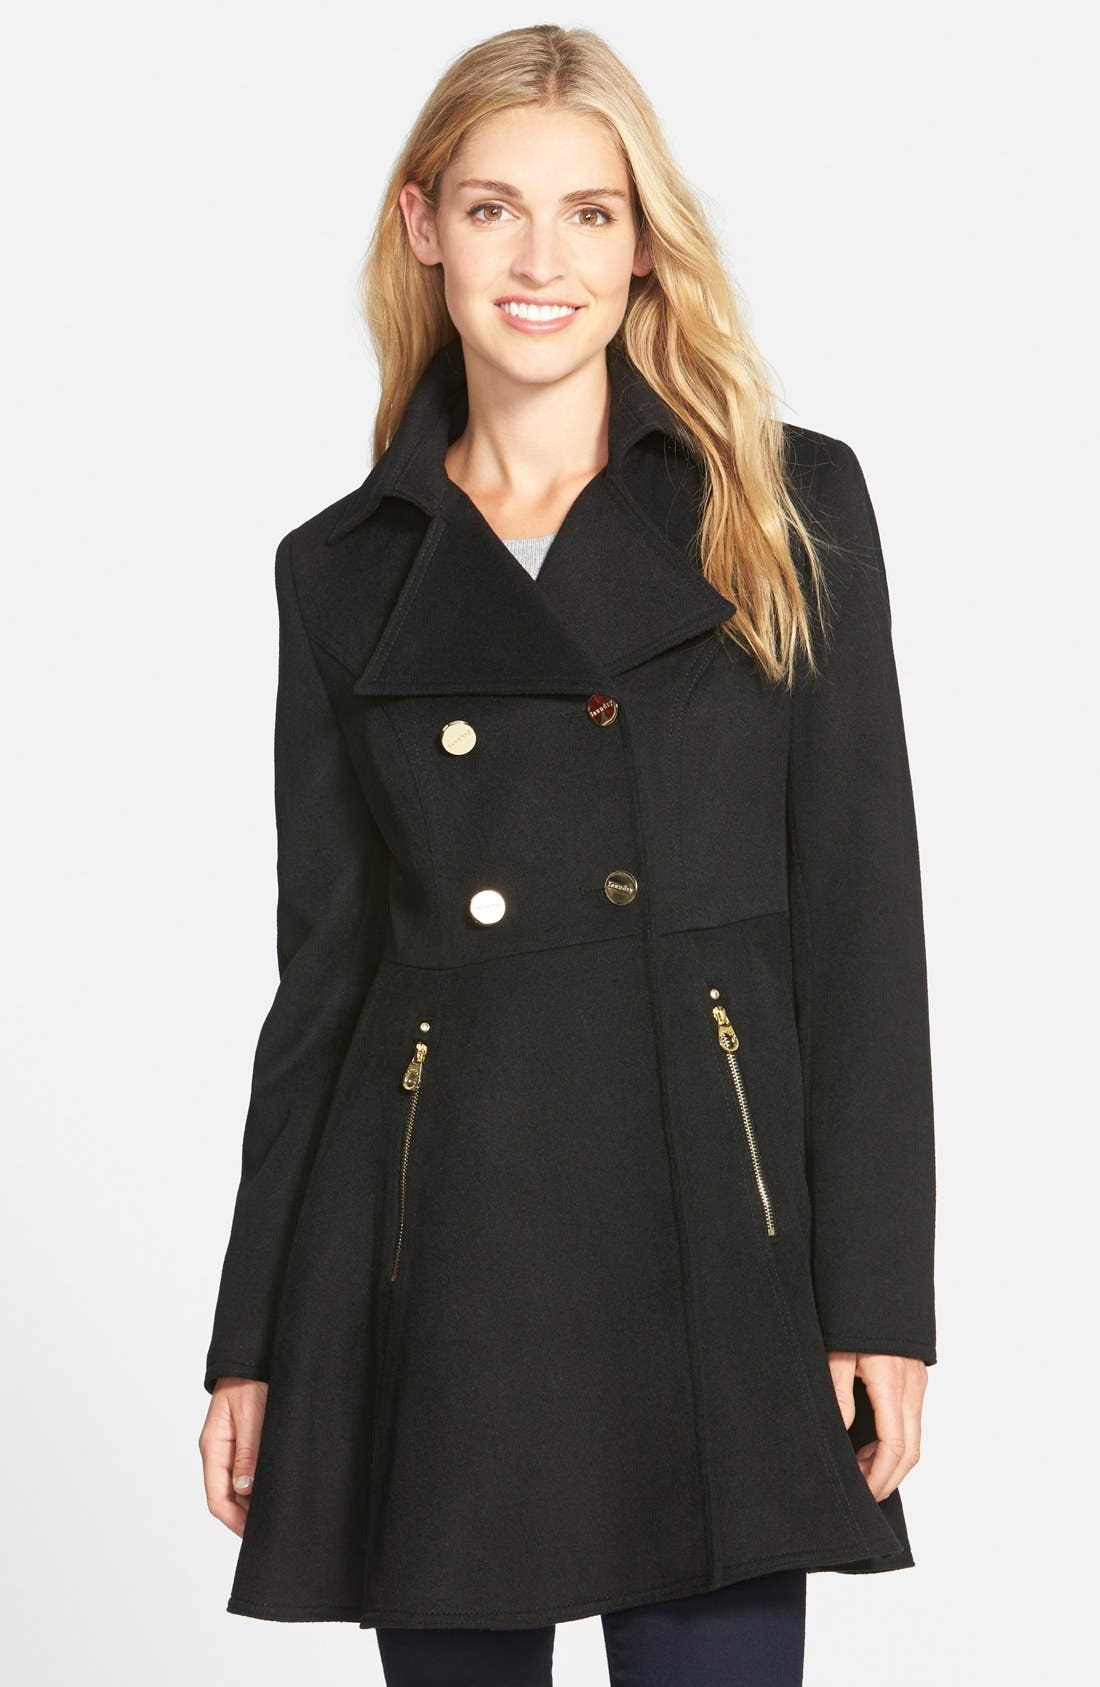 Laundry by Shelli Segal Double Breasted Fit & Flare Coat,                         Main,                         color, Black